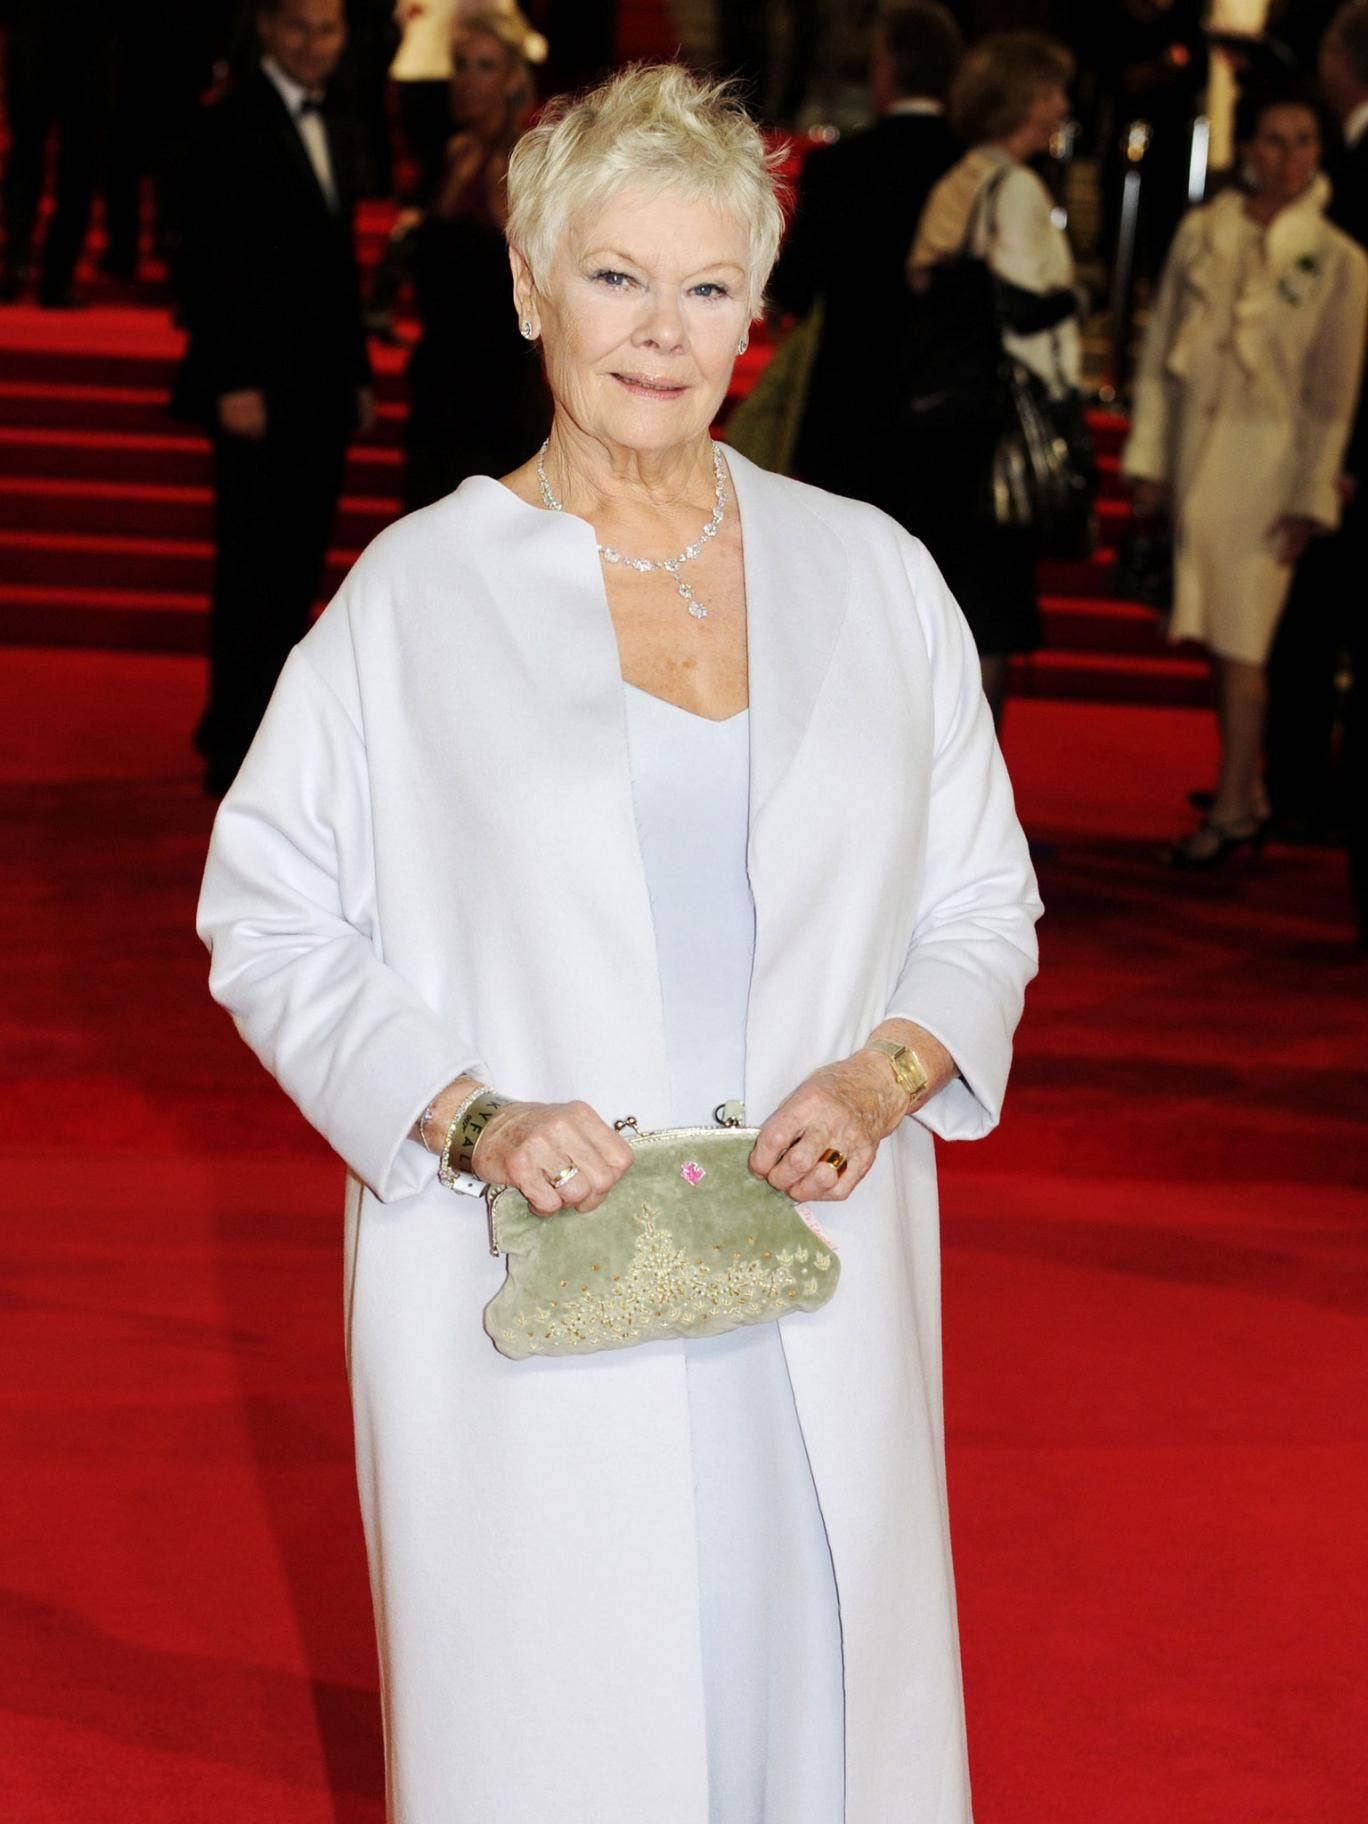 Dame Judi Dench's stage debut was faintly praised